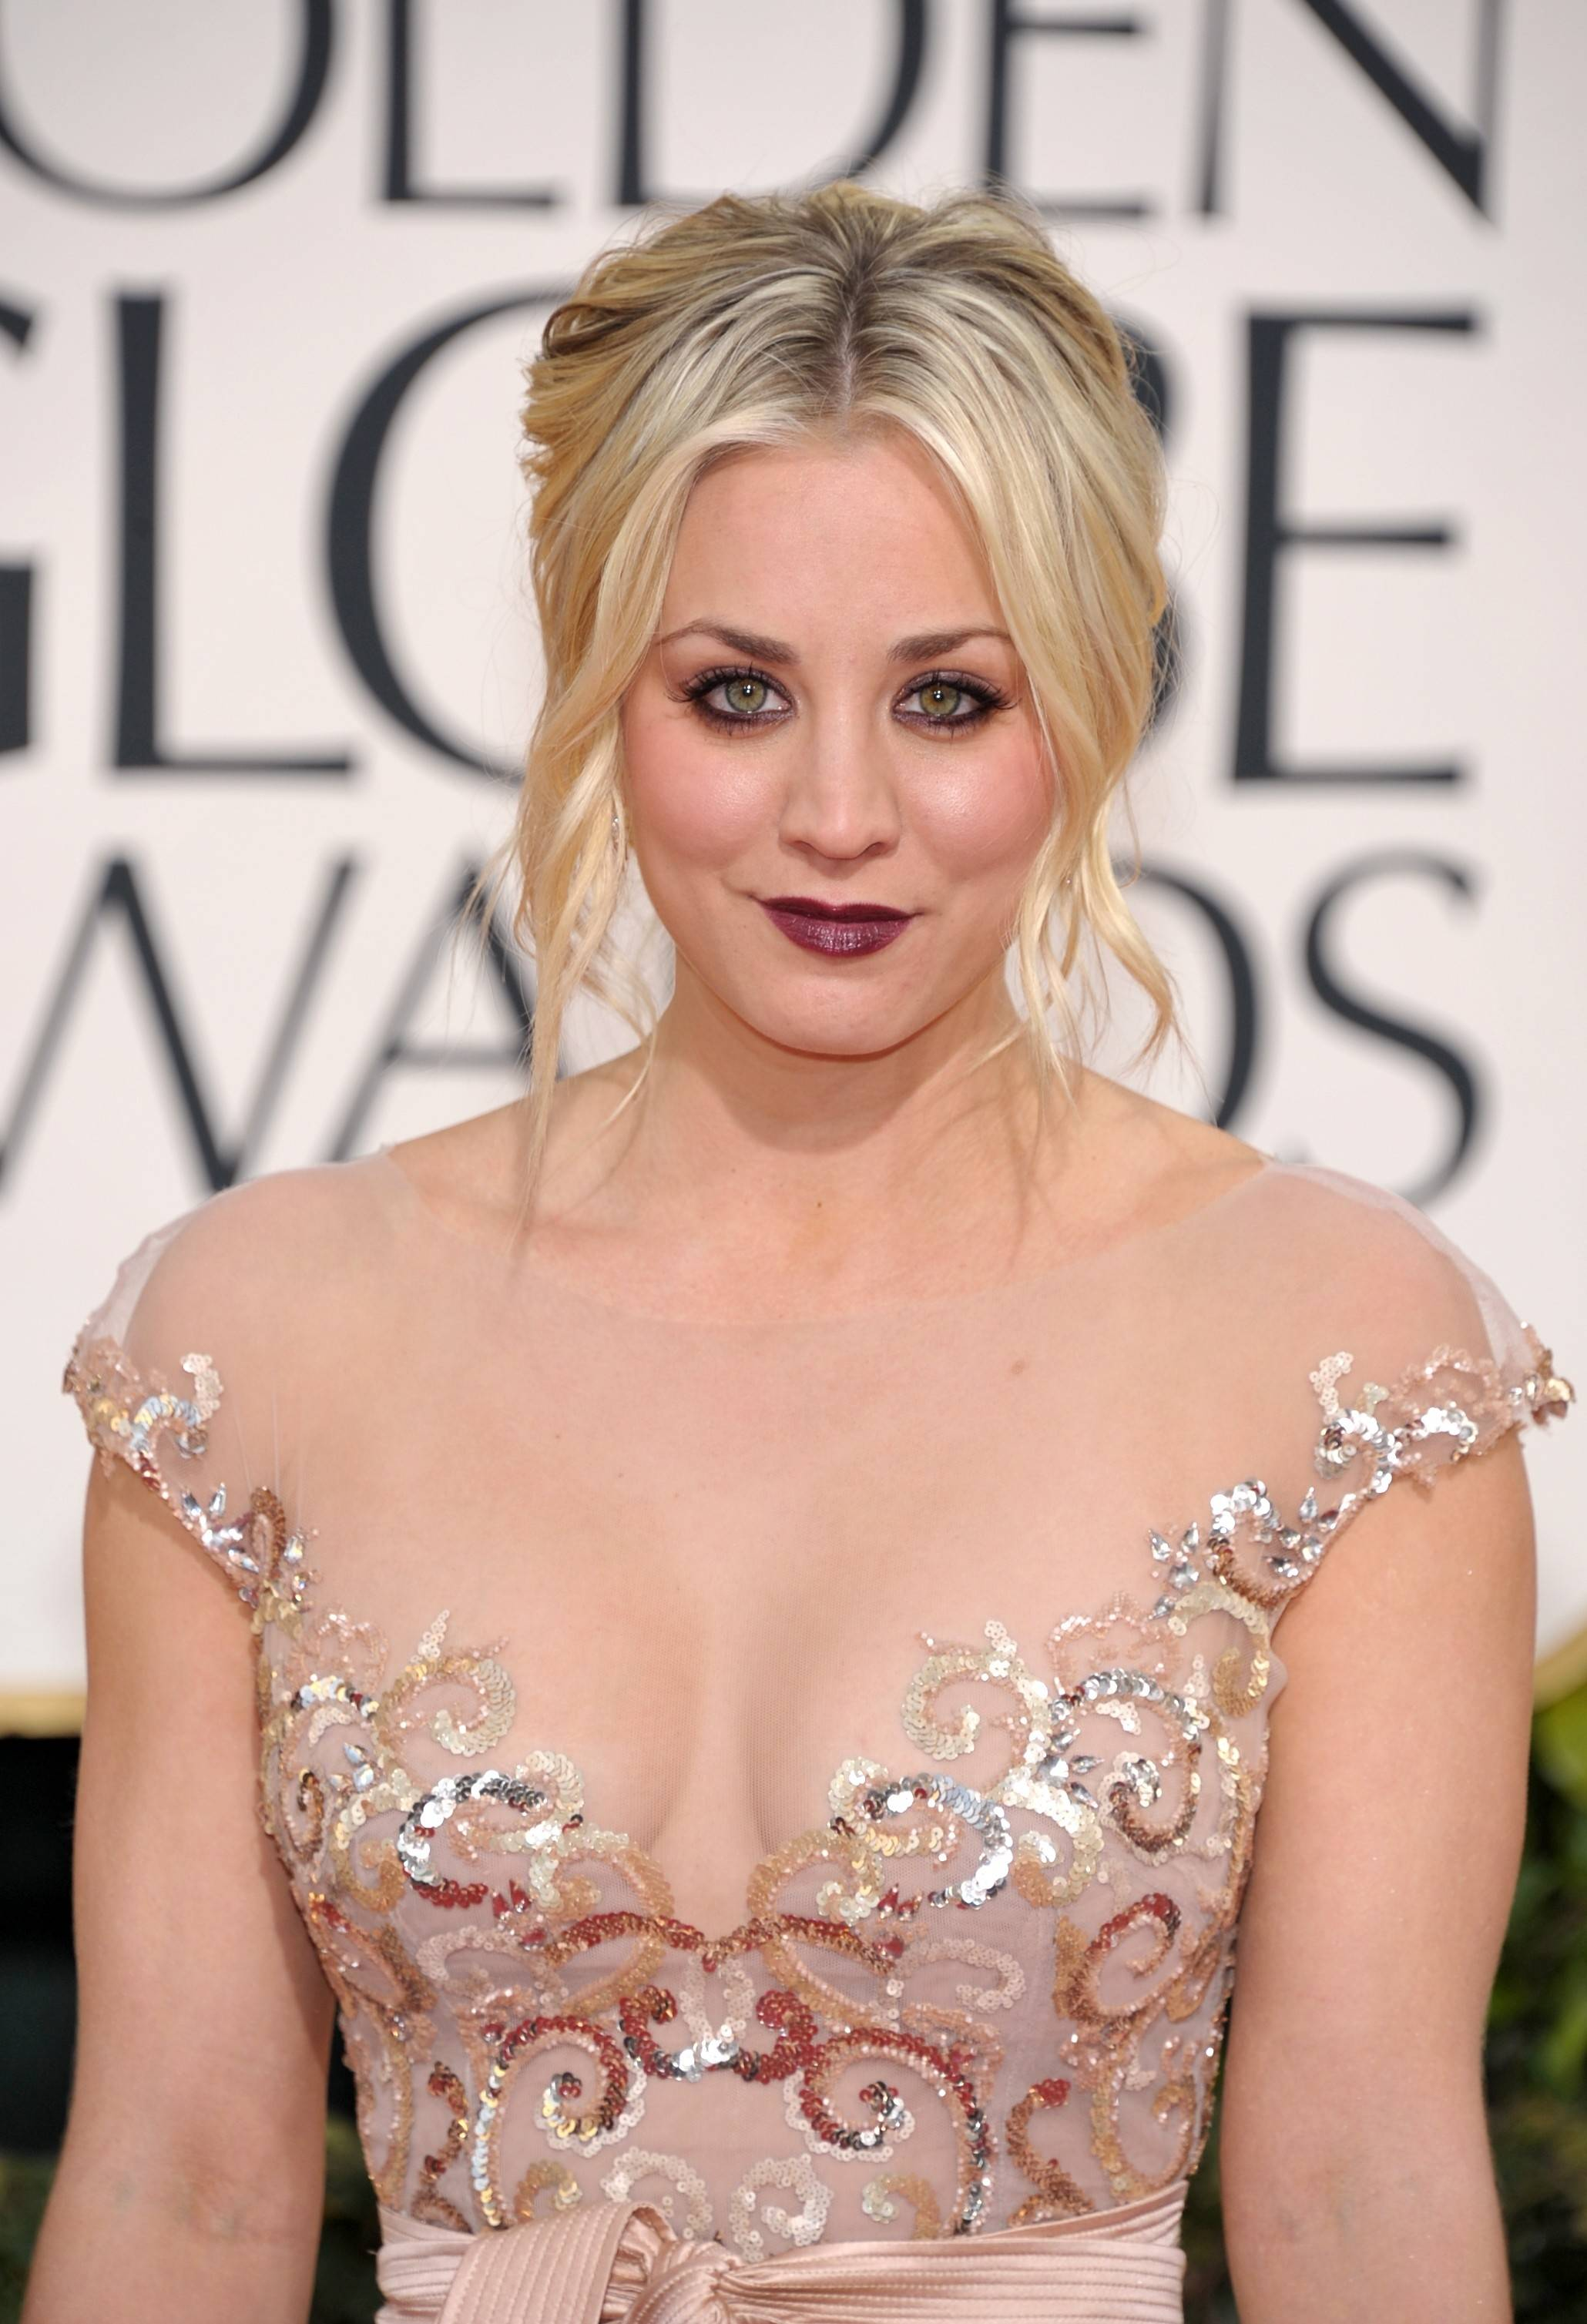 """The Big Bang Theory"" star Kaley Cuoco walks the red carpet."